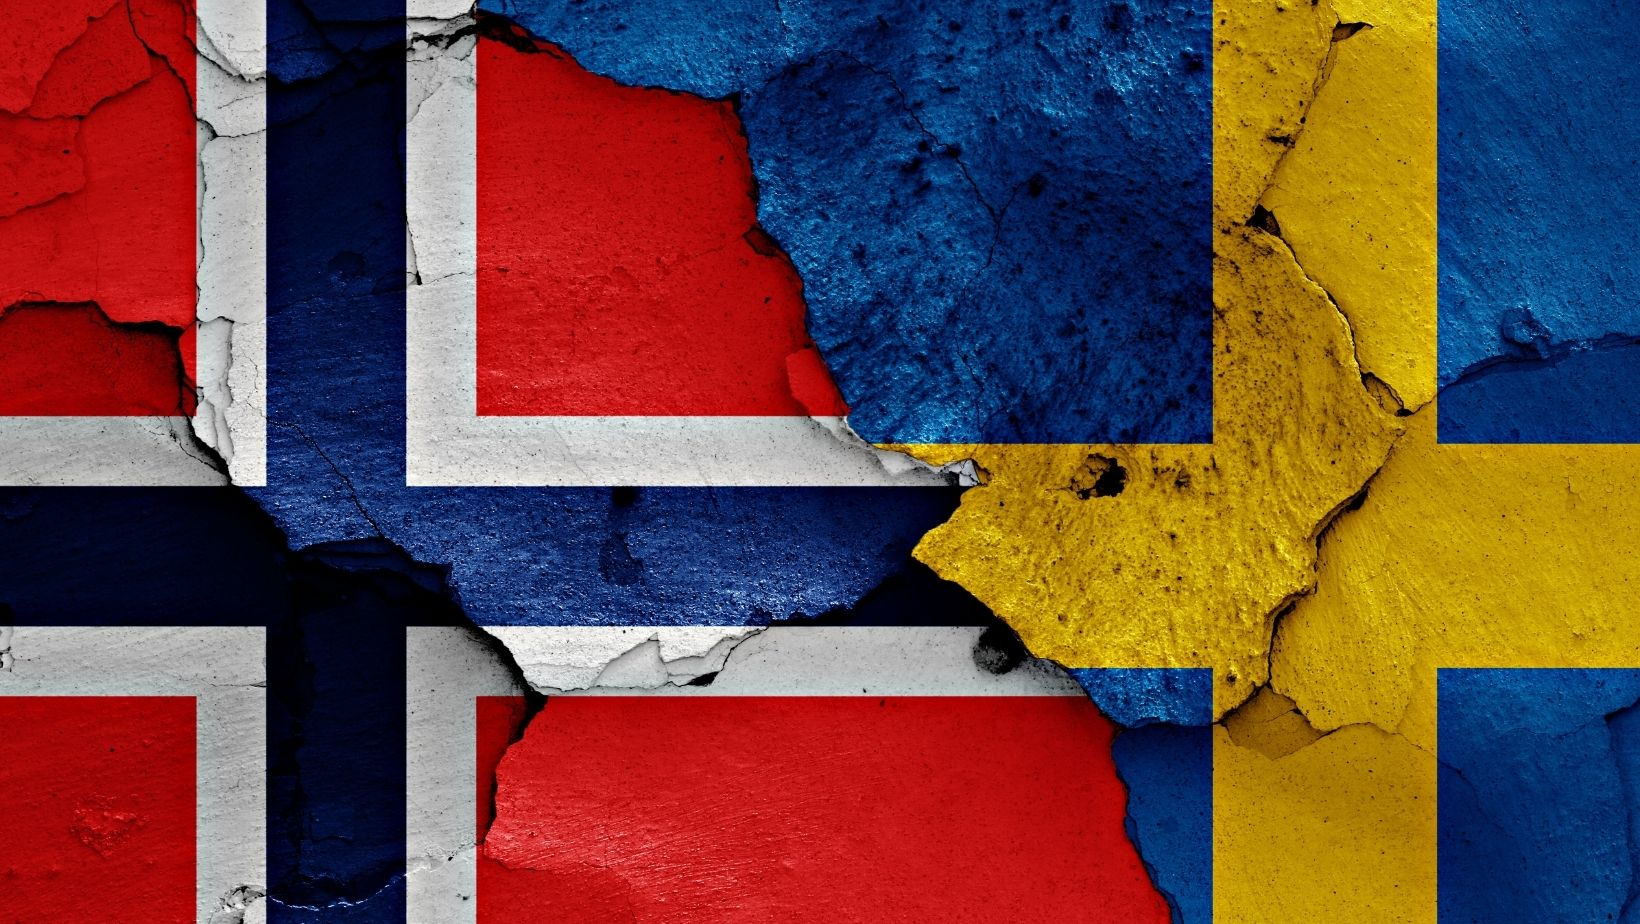 Illustration of Norway-Sweden union flags